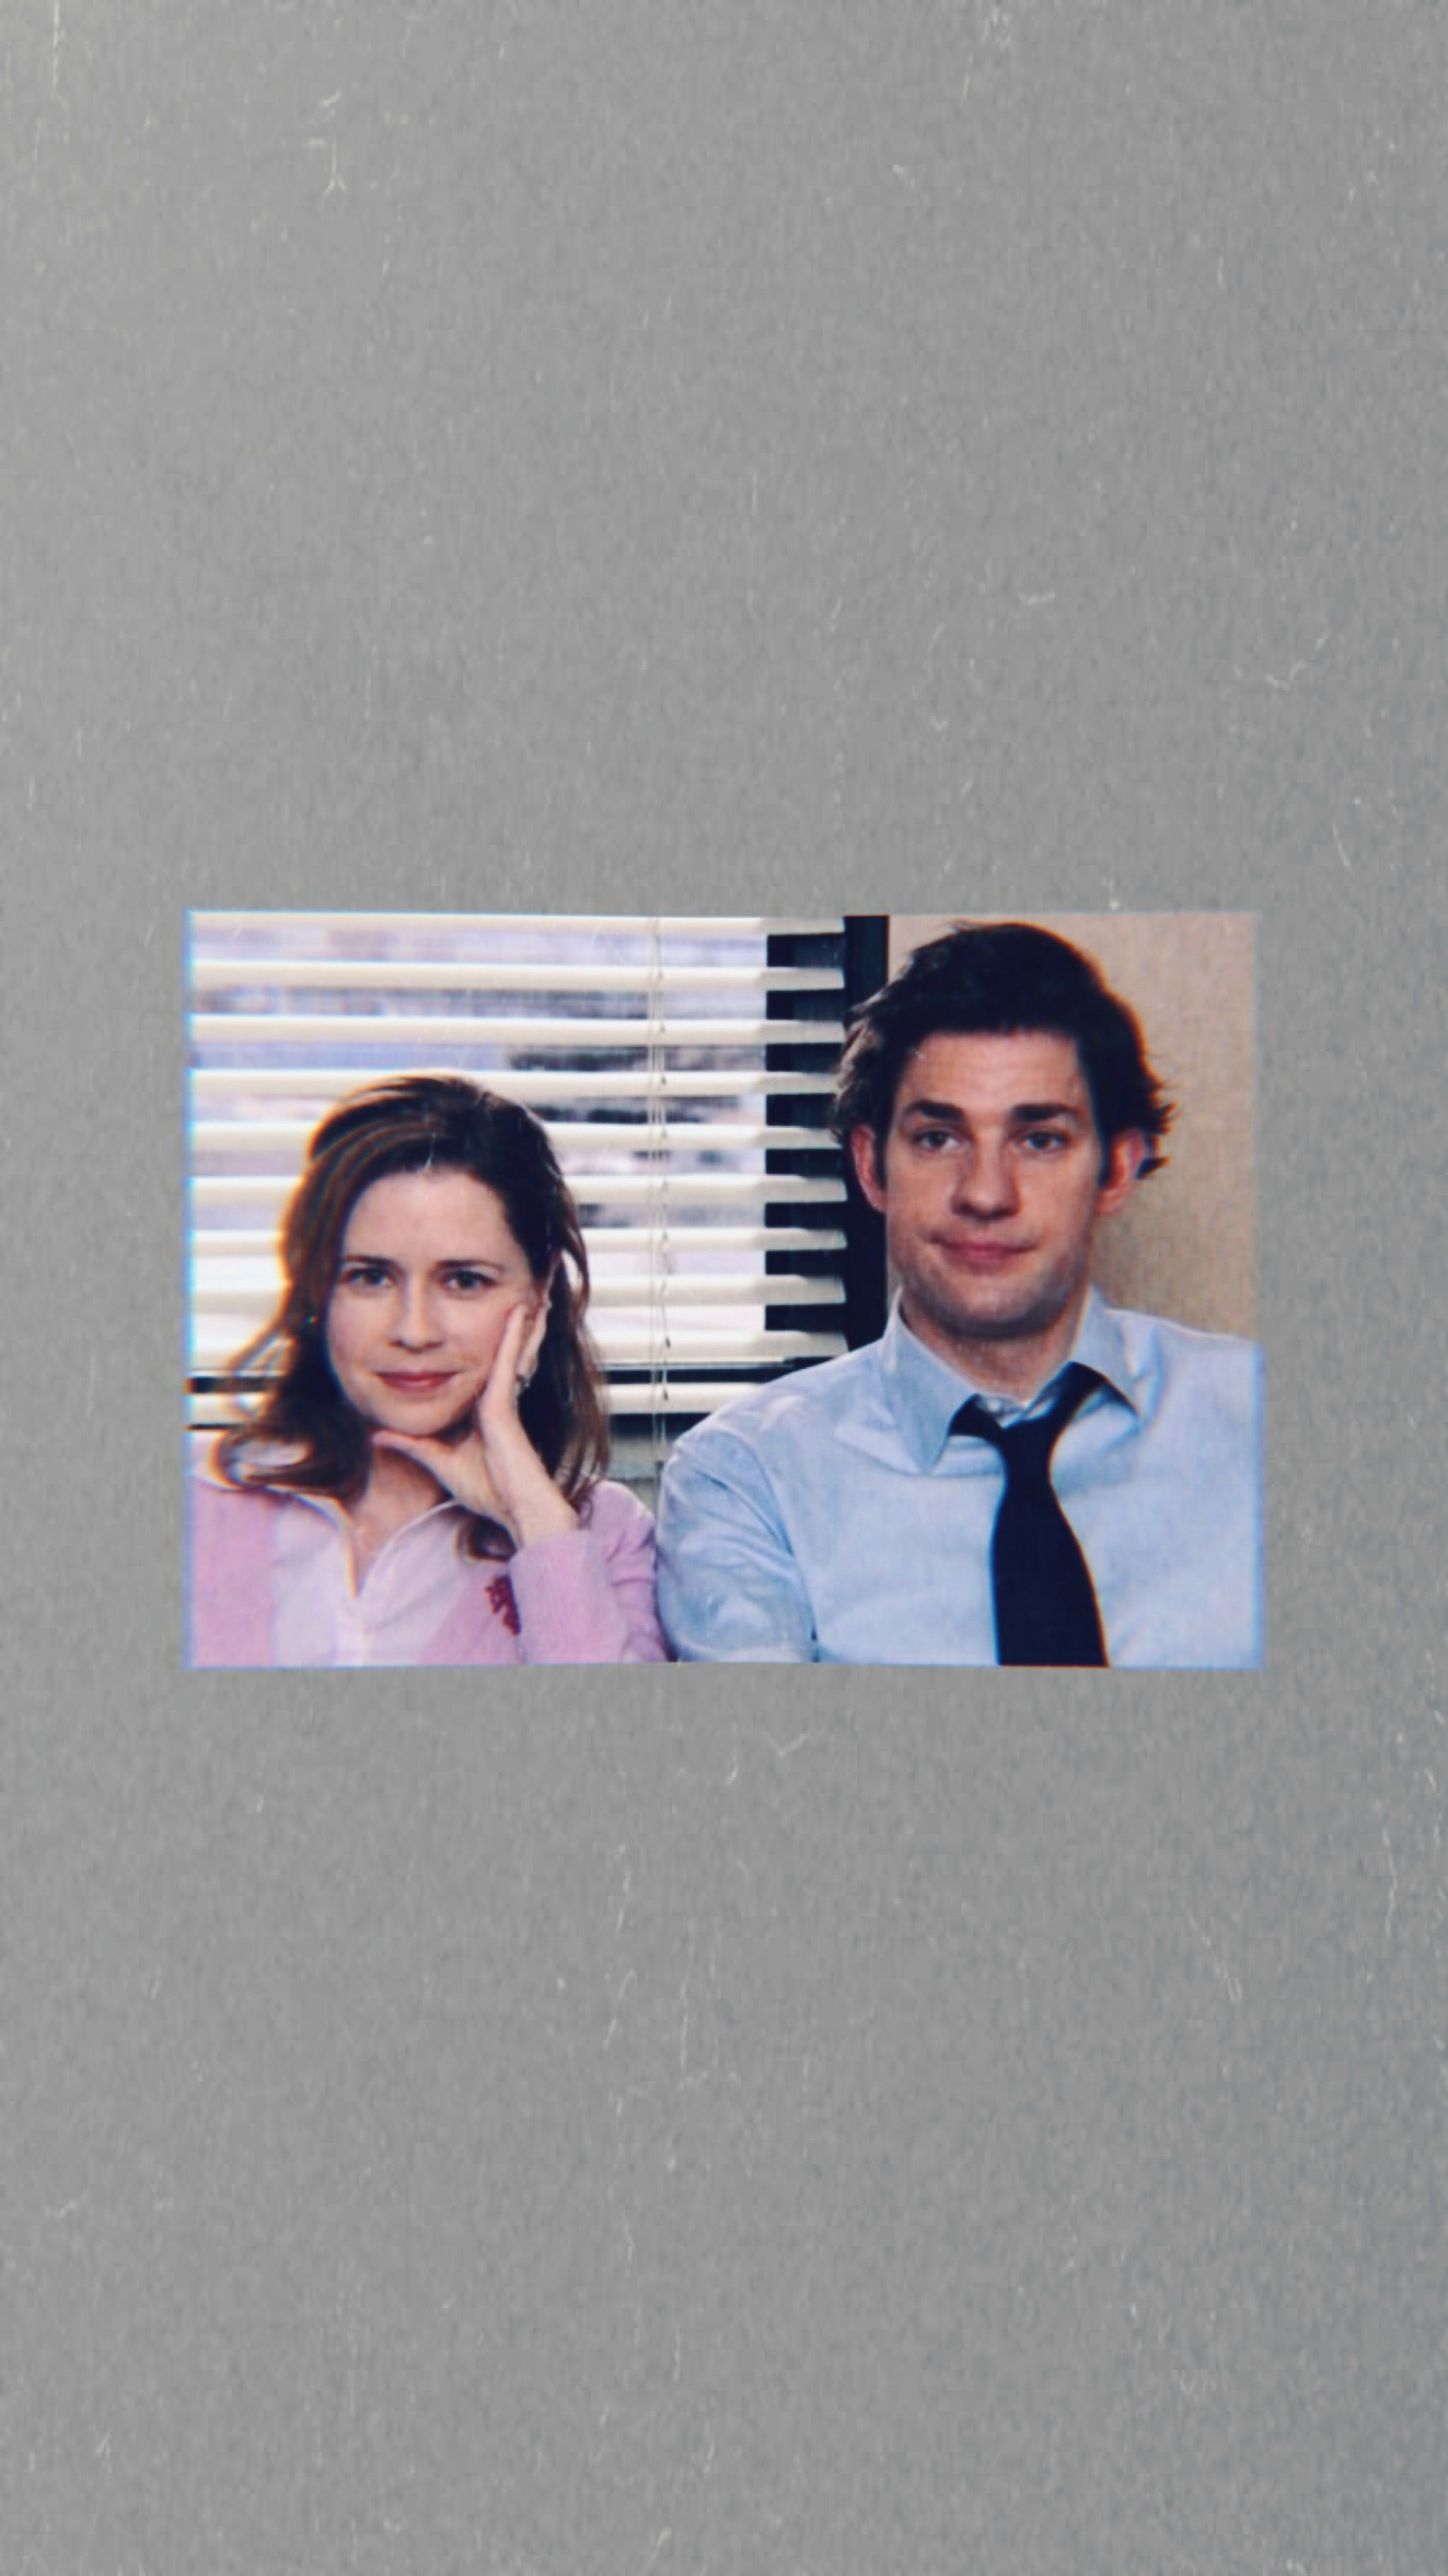 The Office Wallpaper In 2020 Office Wallpaper The Office Stickers Photo Wall Collage